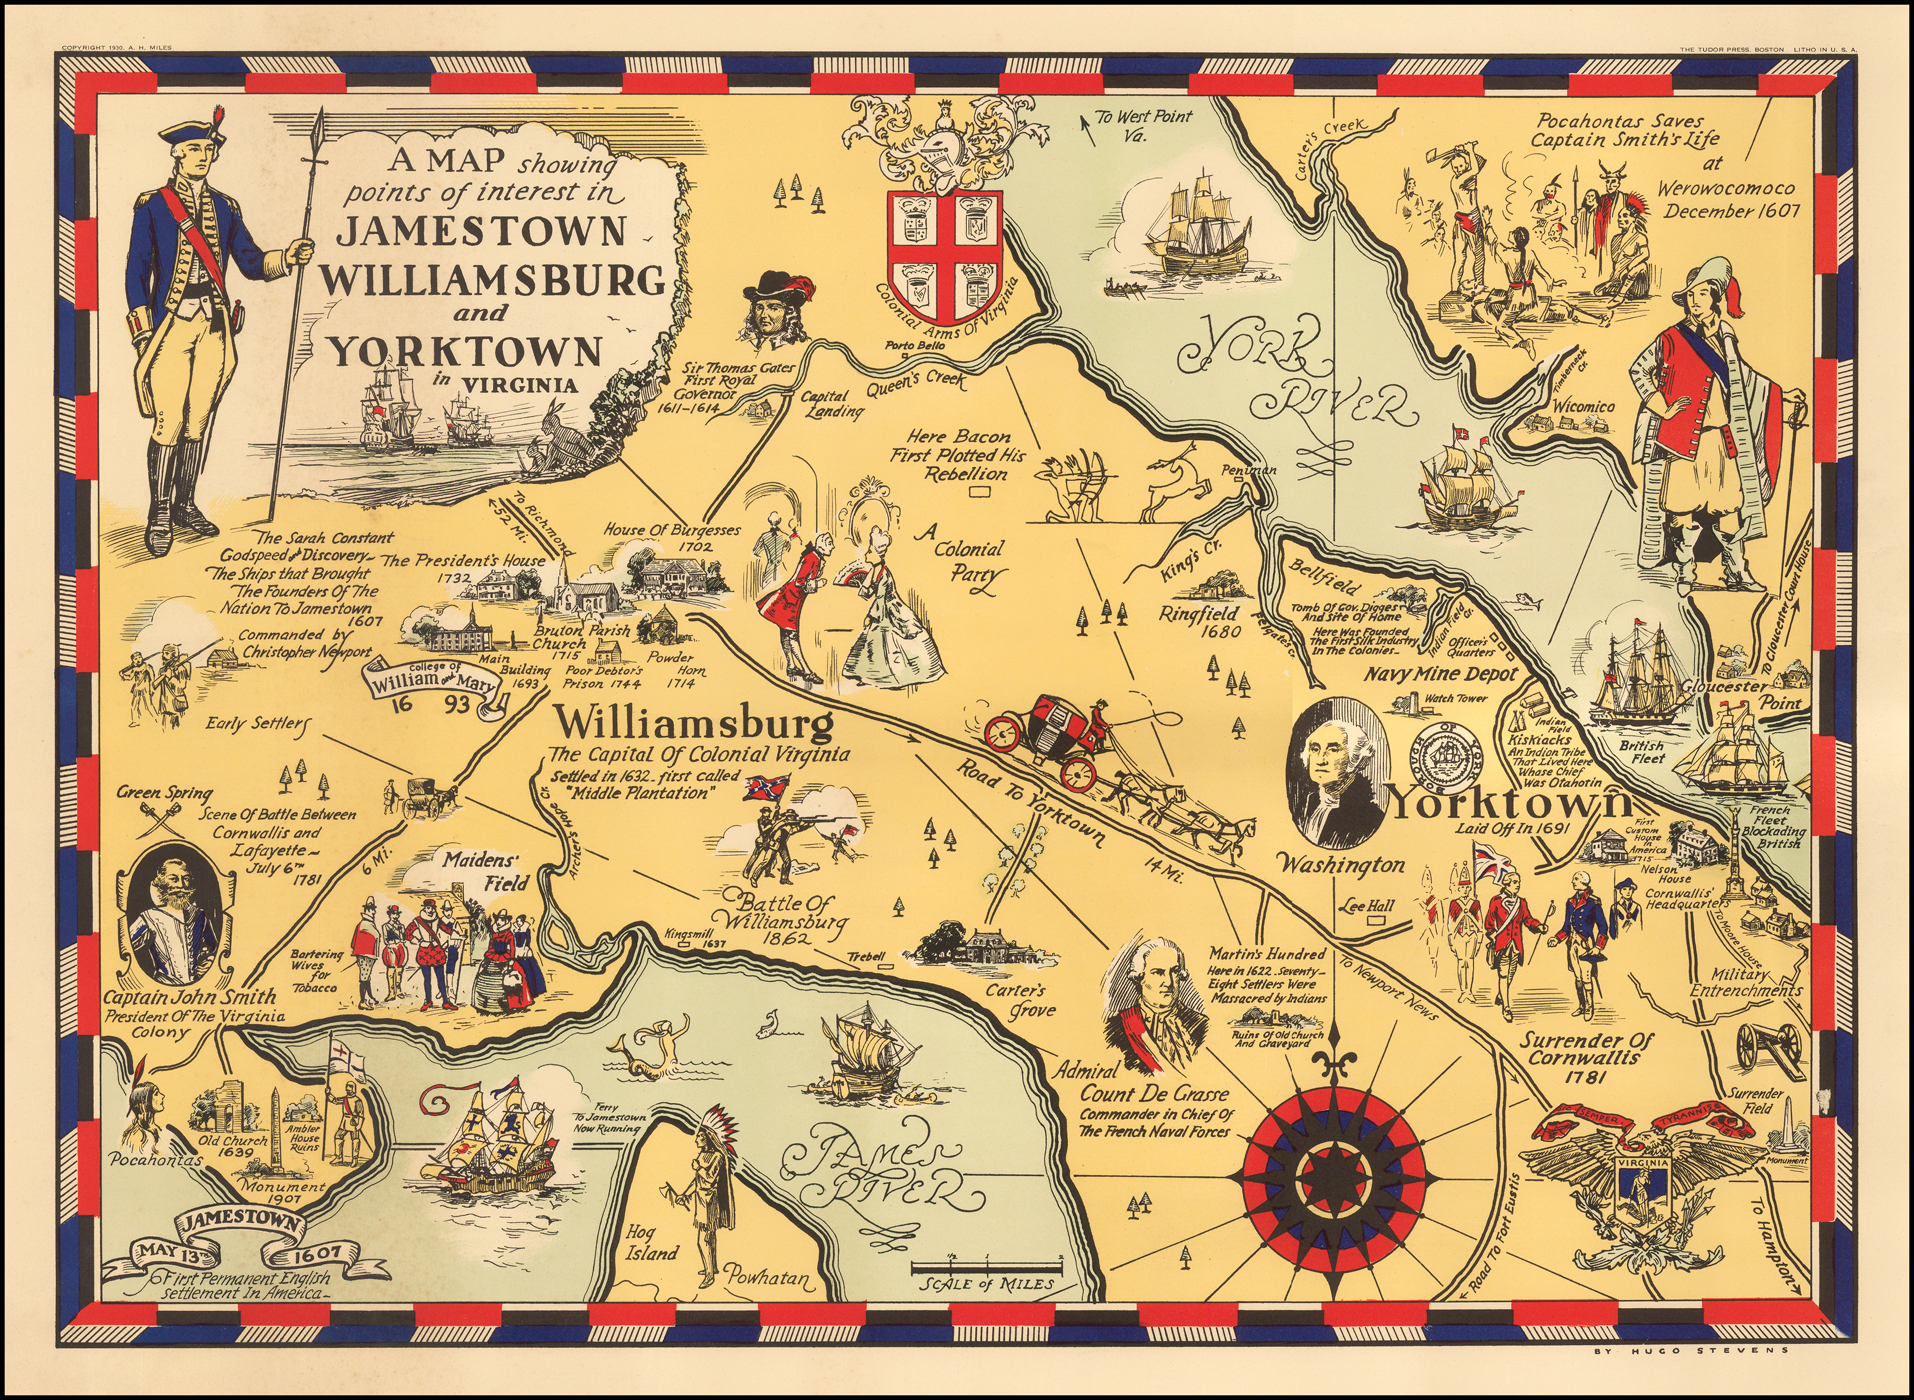 A Map showing points of interest in Jamestown Williamsburg ...